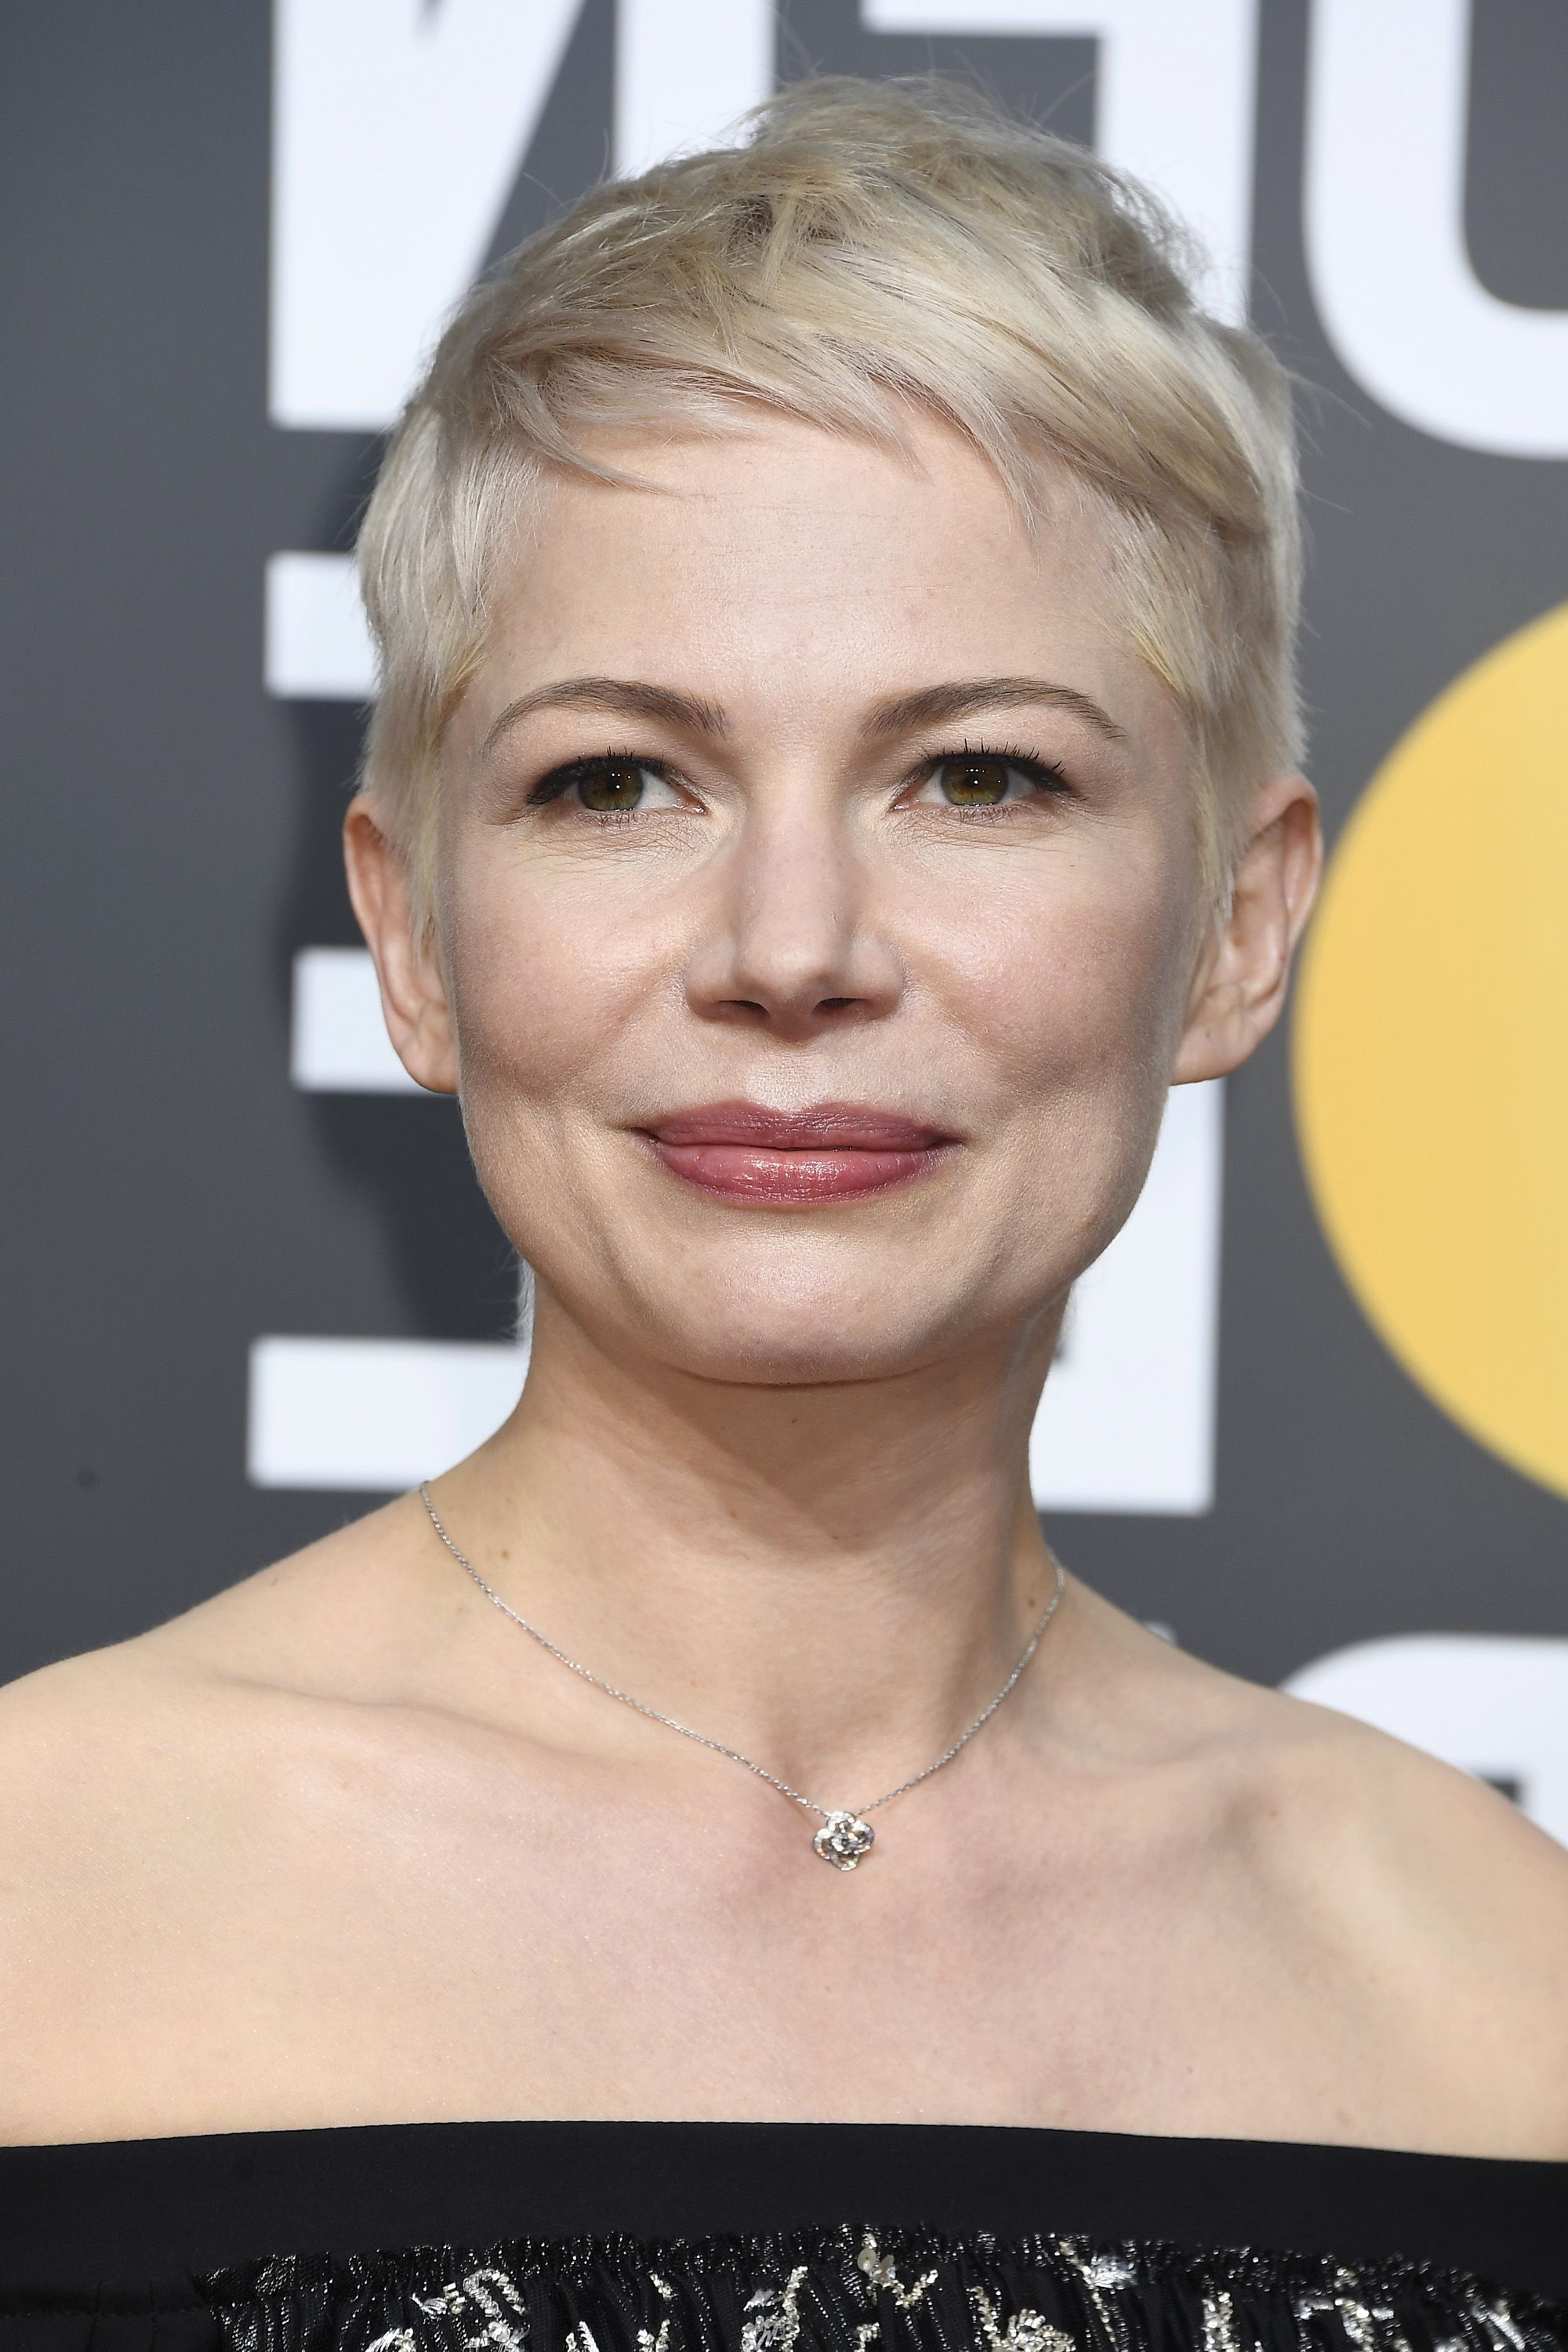 50 Best Pixie Cuts – Iconic Celebrity Pixie Hairstyles In Hairstyles For The Over 50S Short (View 16 of 25)